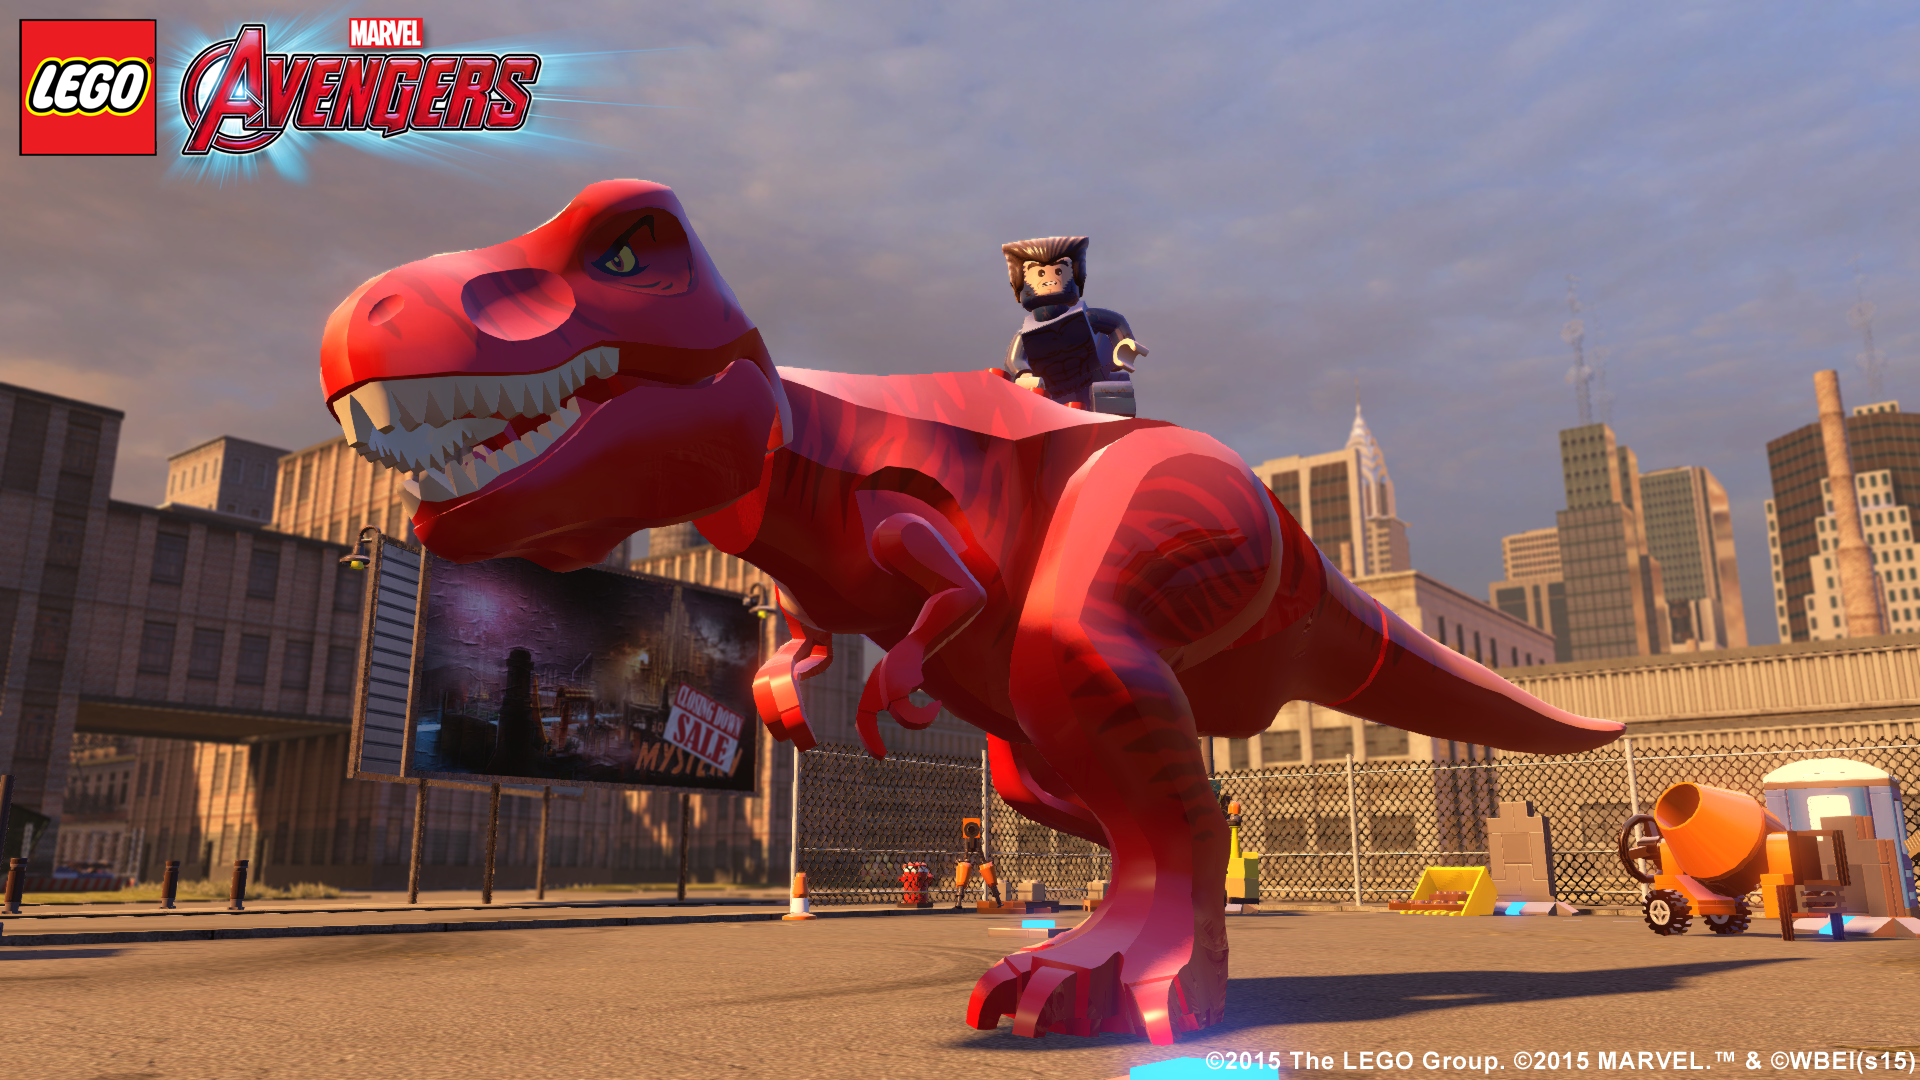 lego-marvels-avengers-review-screen-devil-dinosaur-and-moon-boy